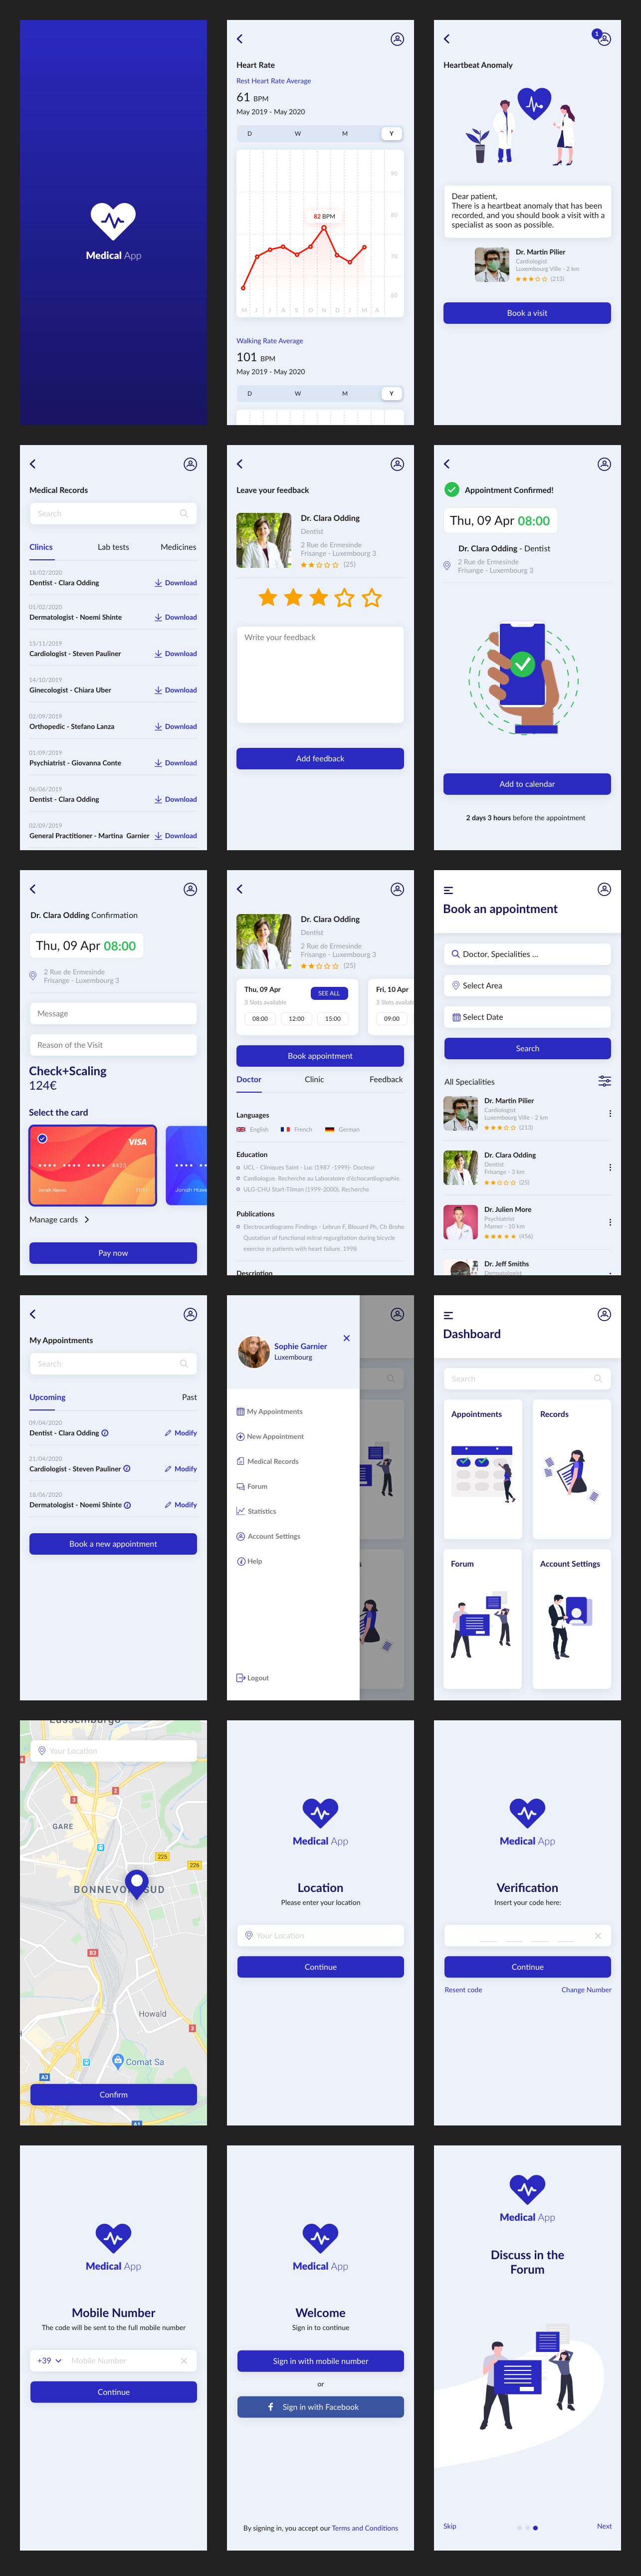 Medica App for Adobe XD - Minimal and clean app design, 18 screens for you to get started.